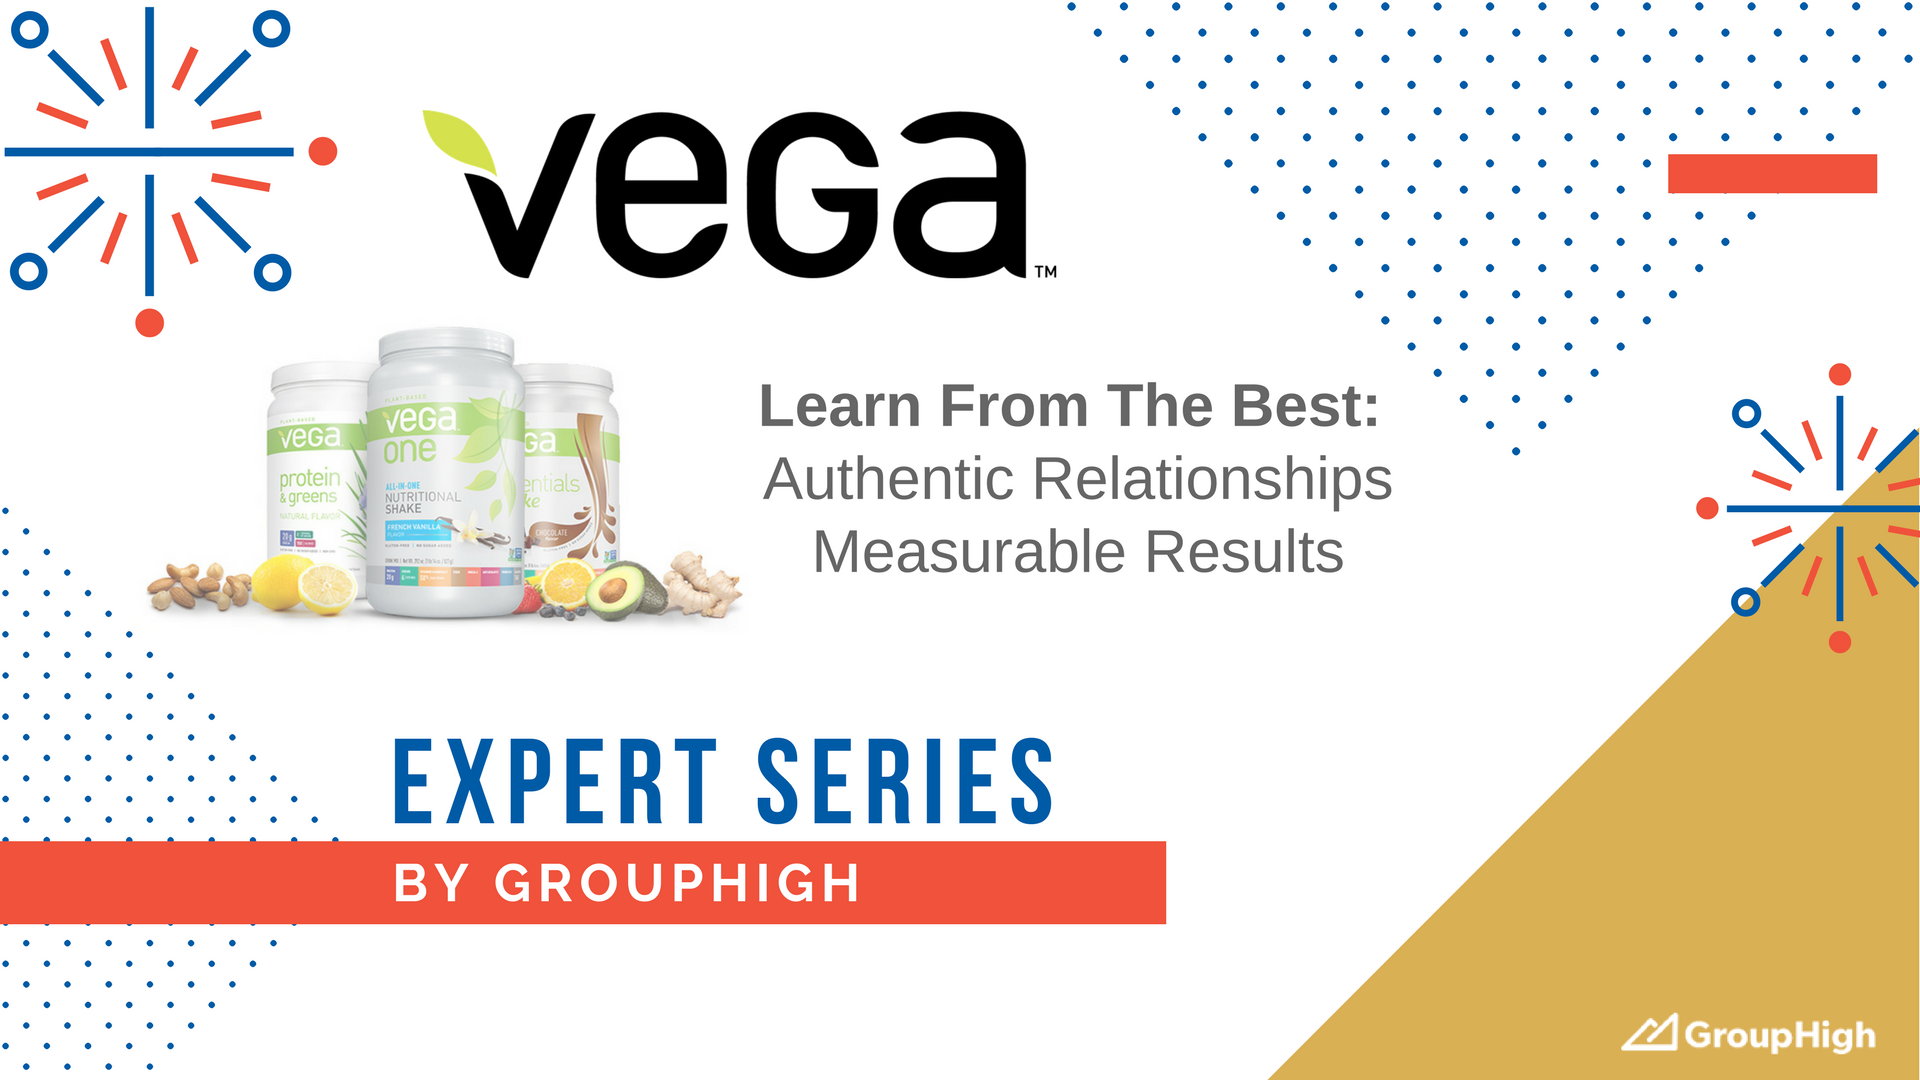 How Vega Creates Authentic Relationships and Measurable Results with Influencers